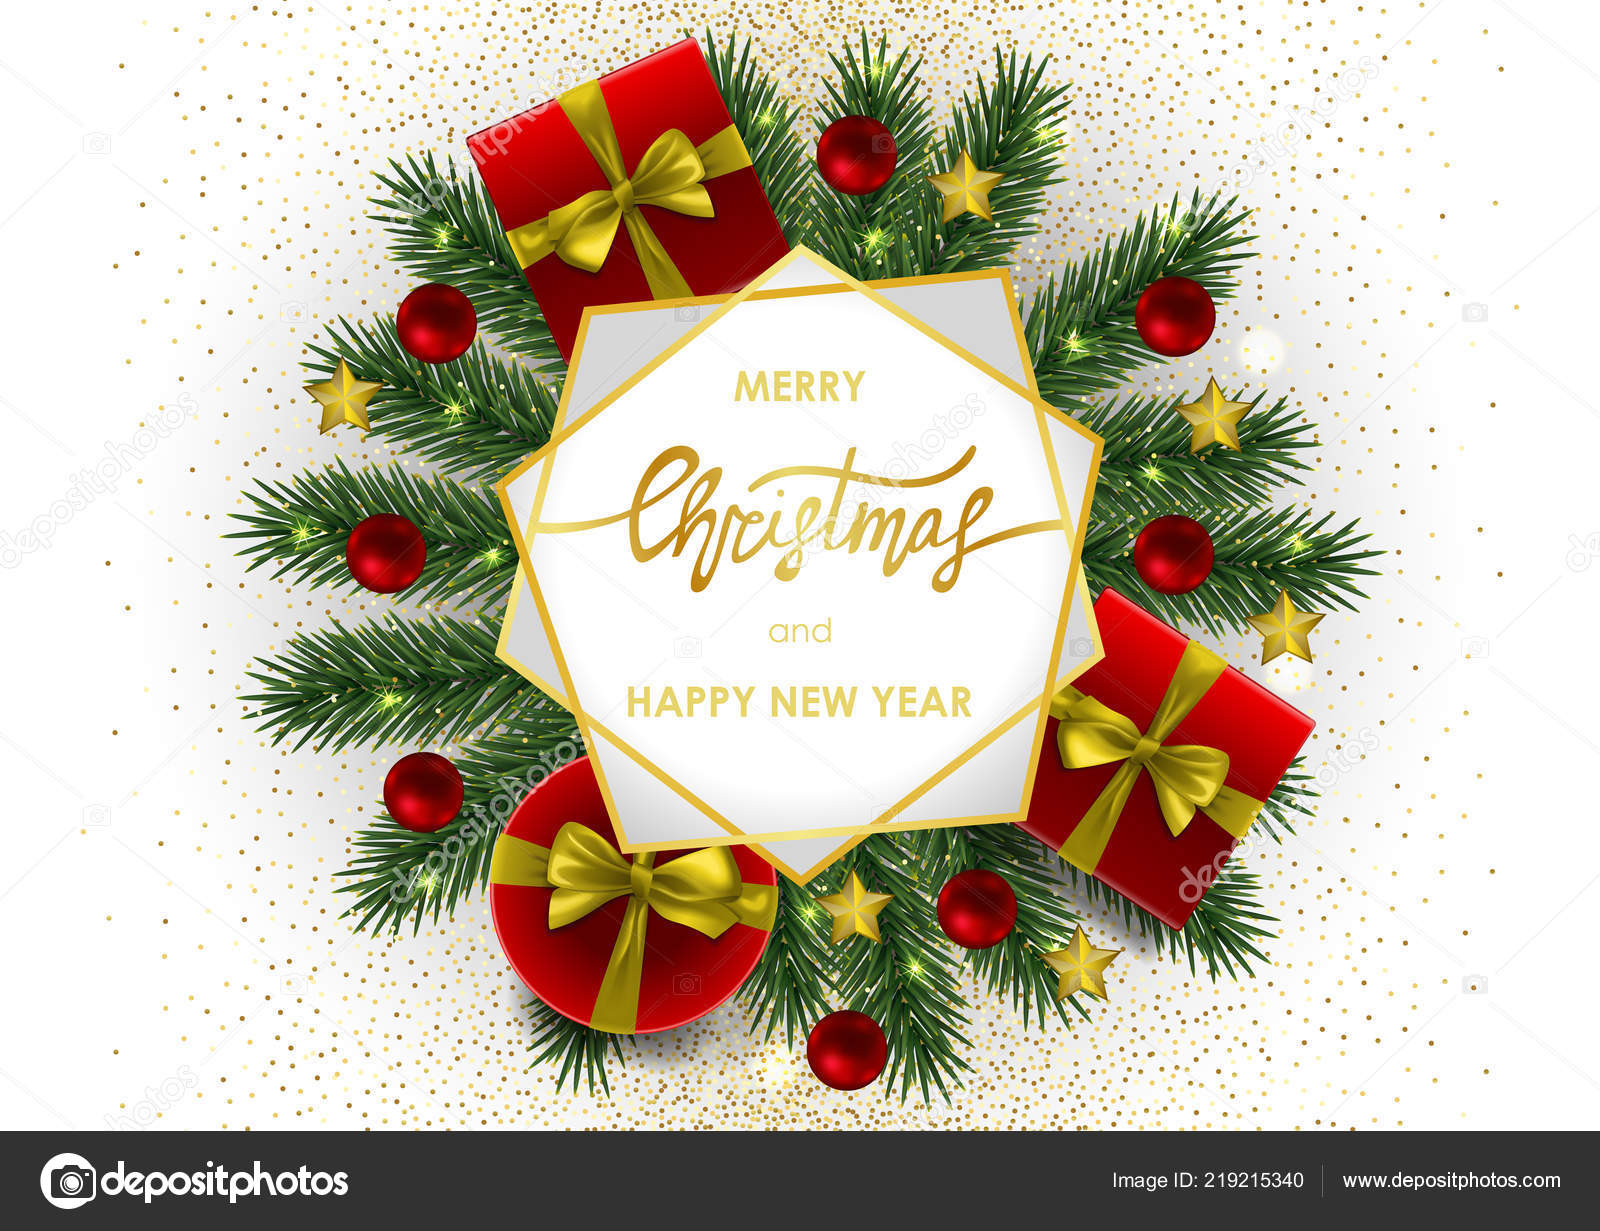 merry christmas and happy new year invitation card with gold geometric frame on white background a4 template with fir tree template for greeting winter